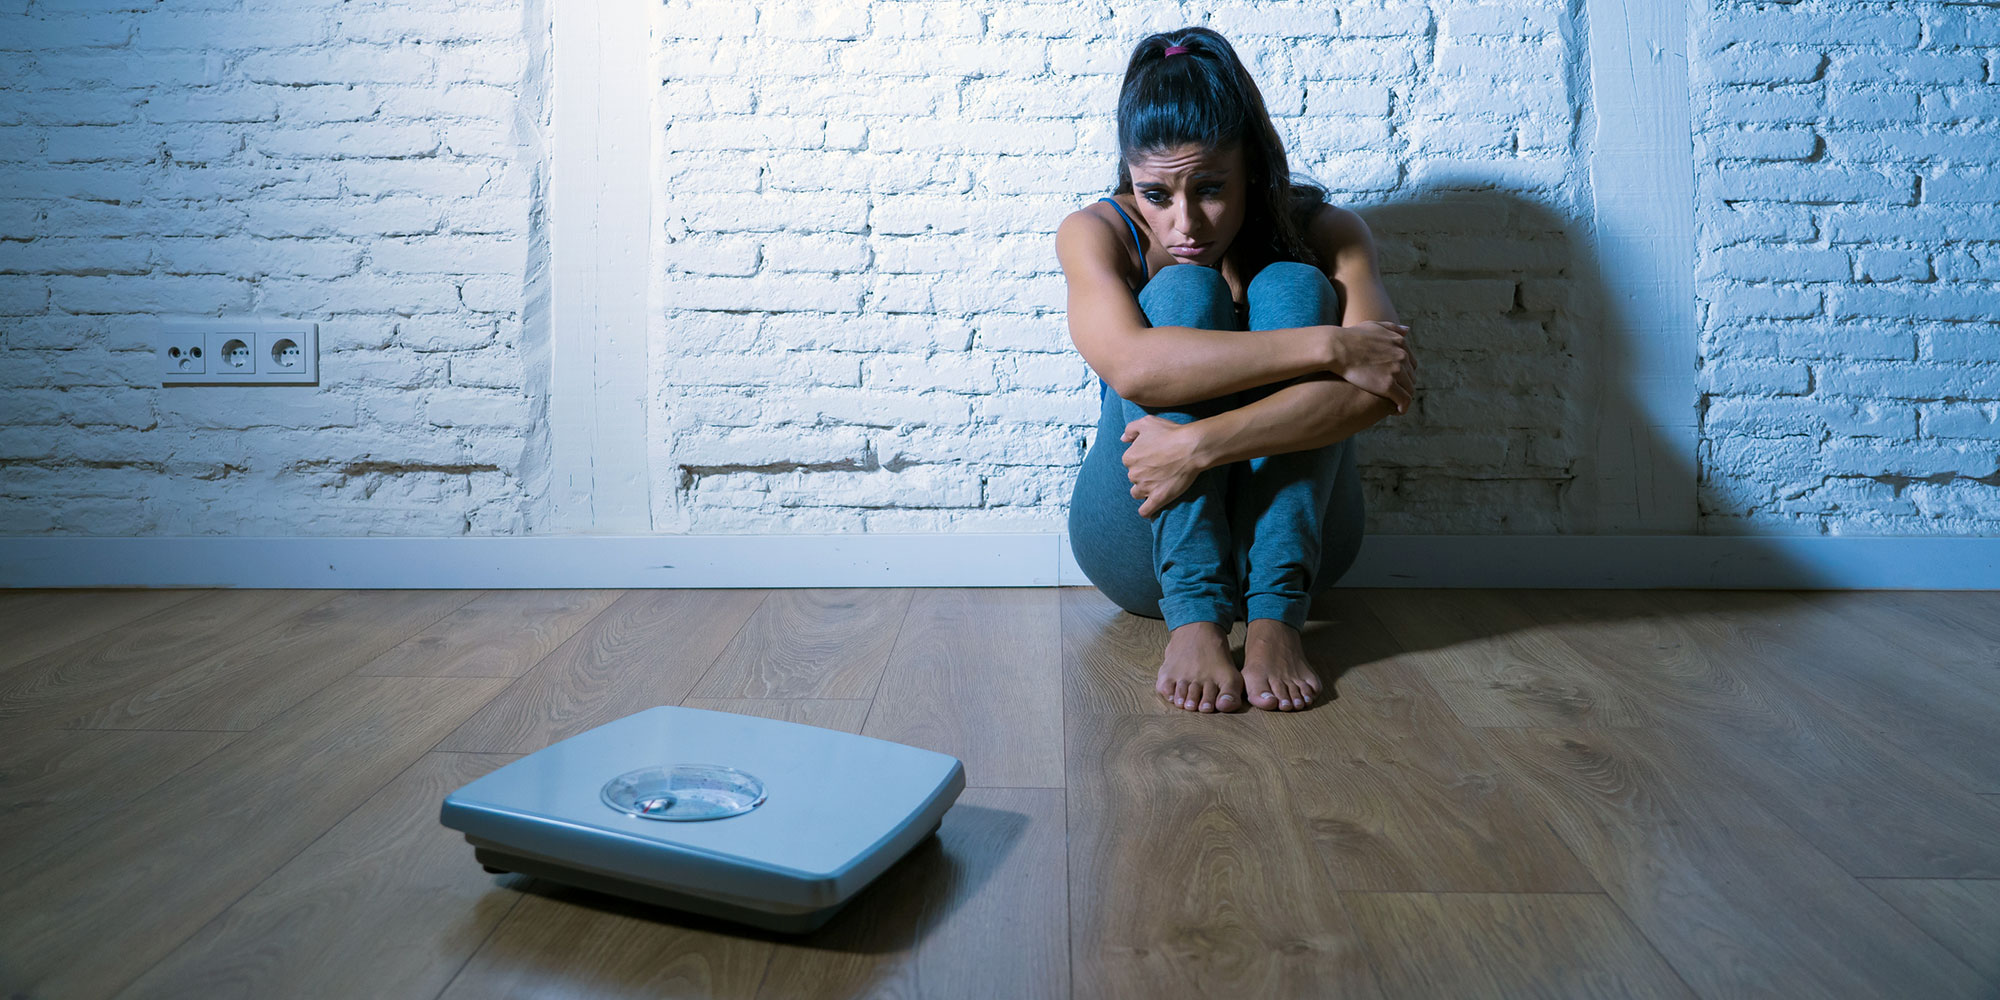 Tips to Help Someone with an Eating Disorder